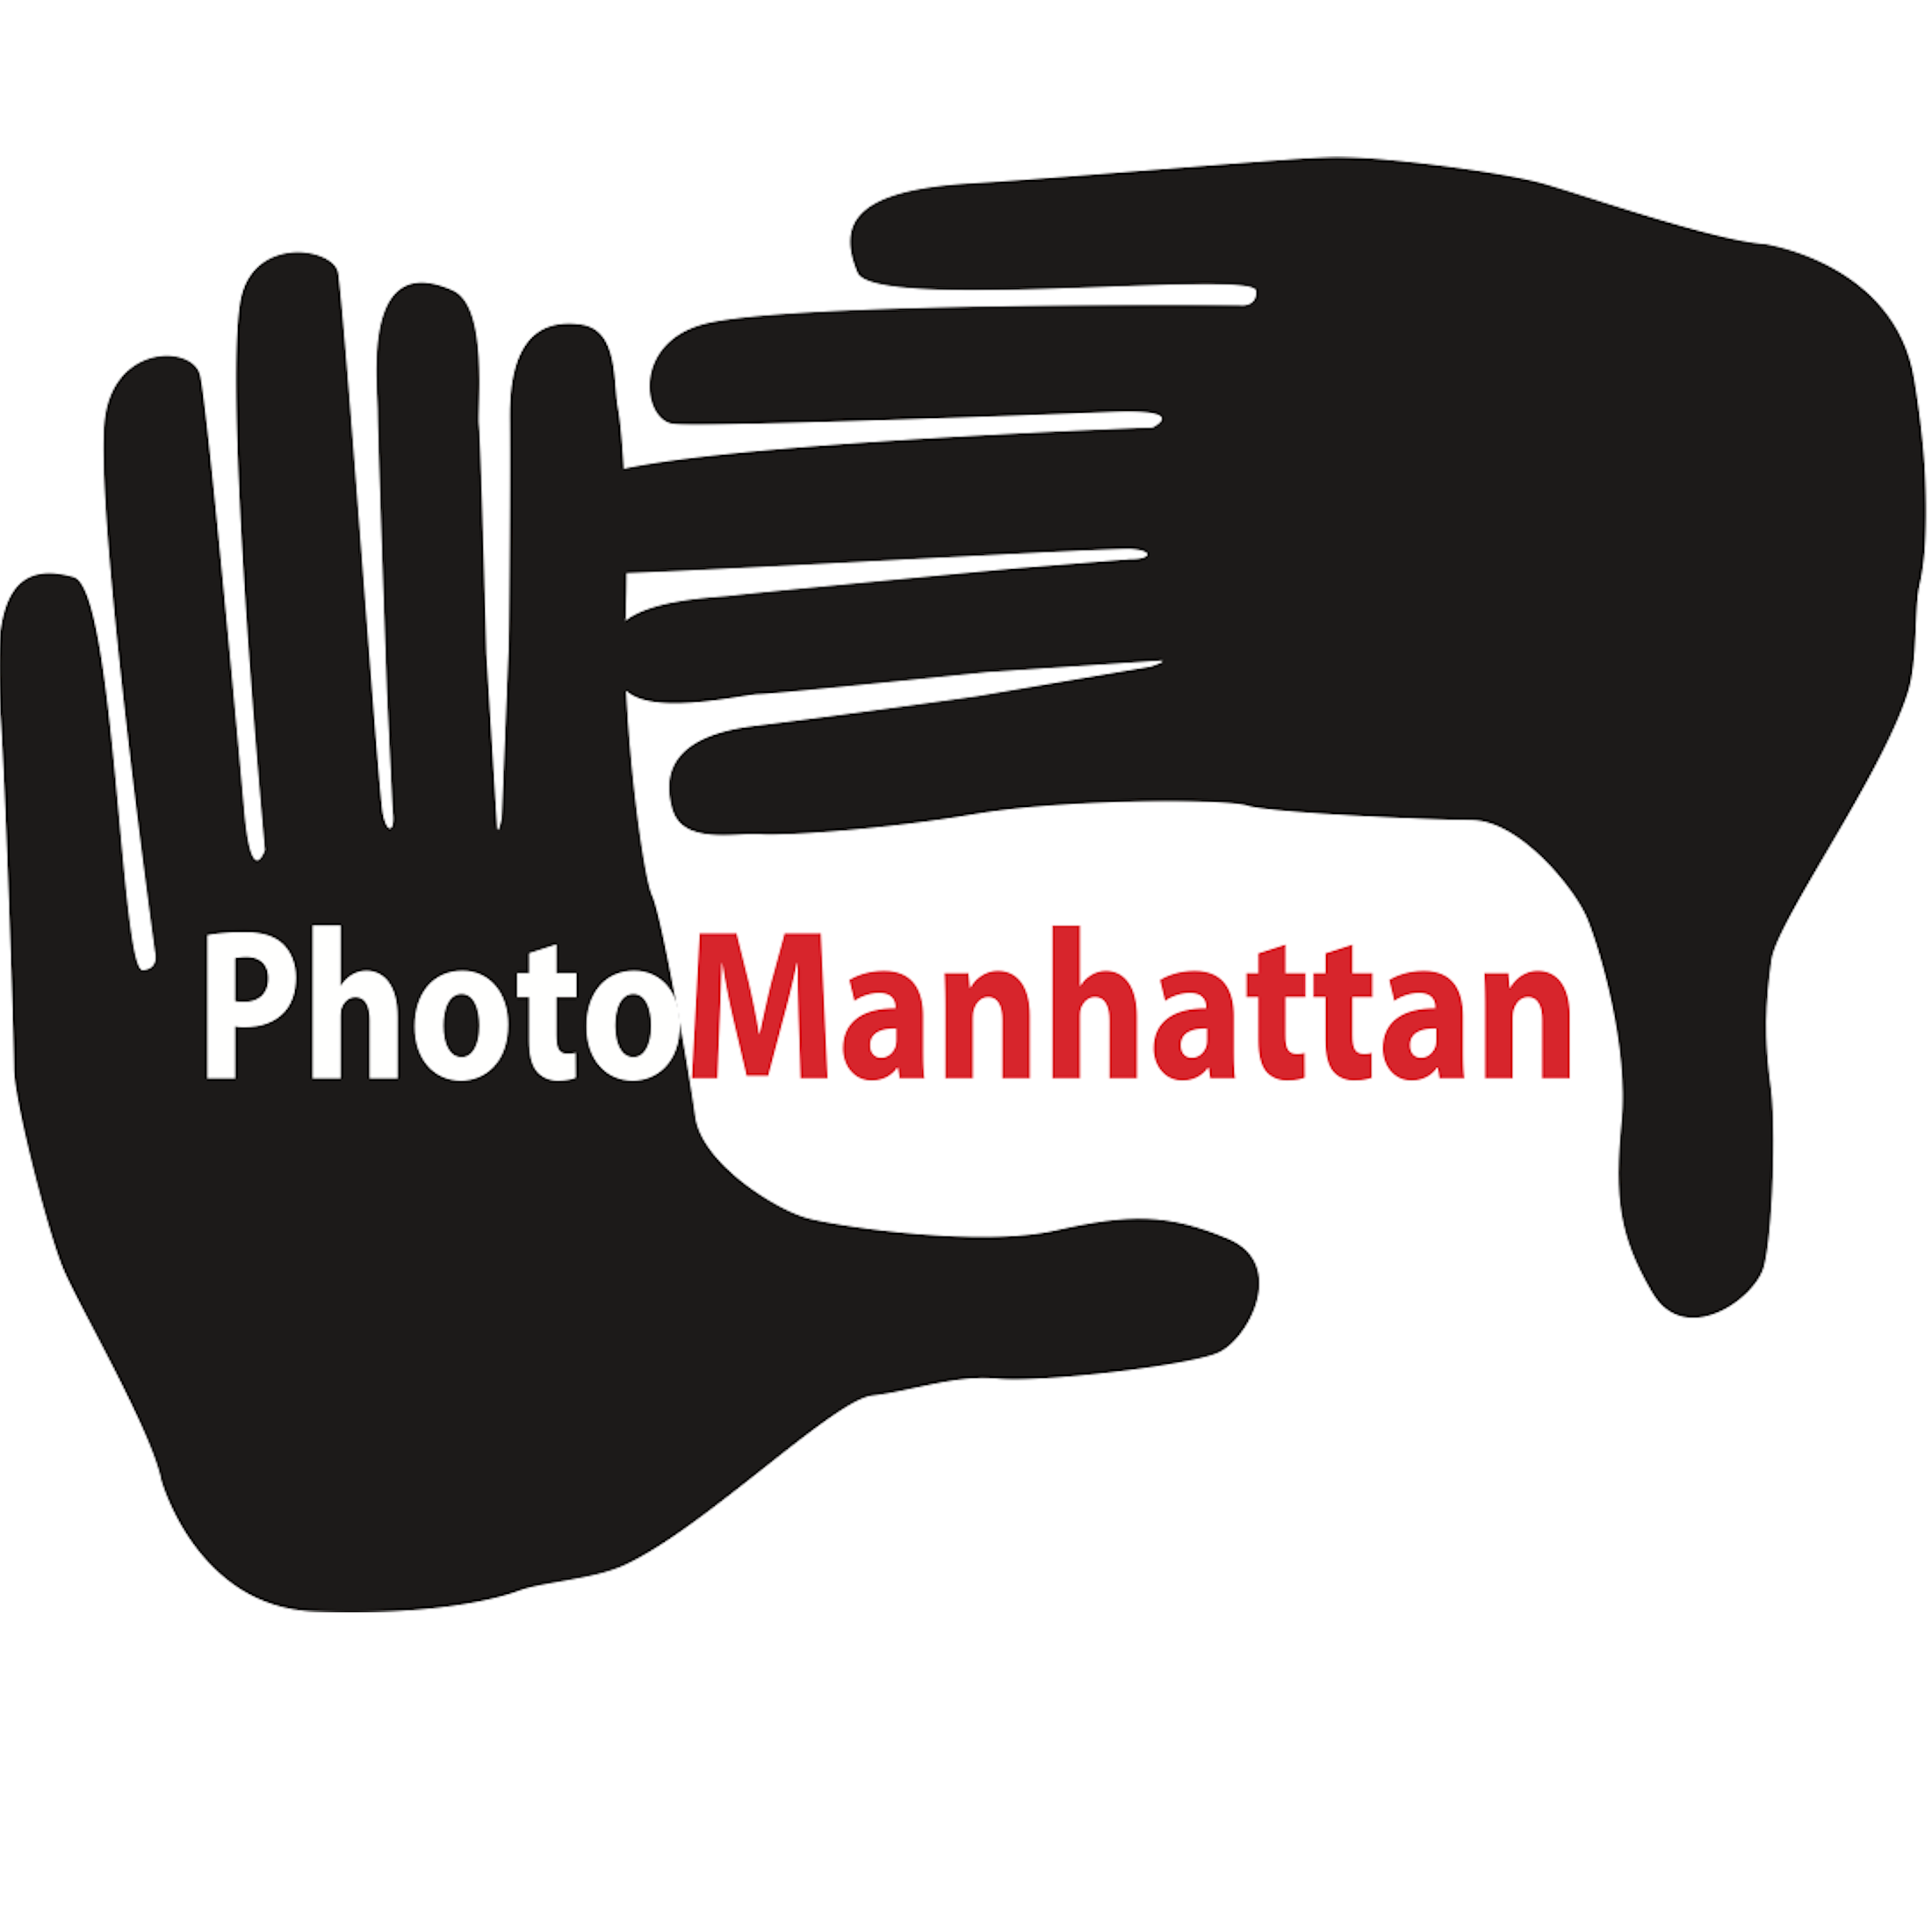 PhotoManhattan - Photography classes NYC & Free Exhibits